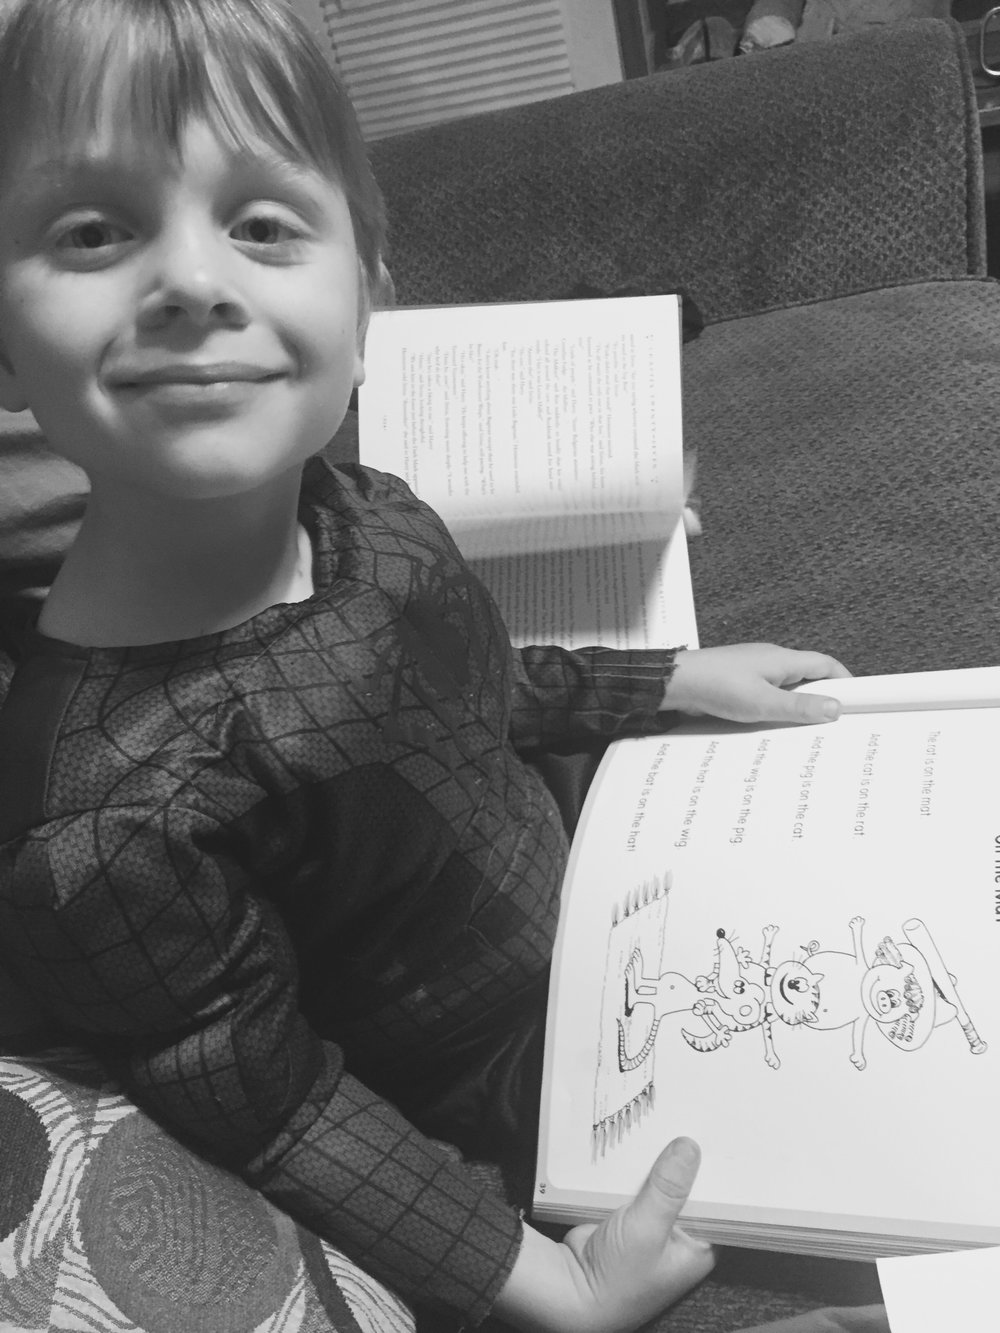 My proud reader. My heart could burst.